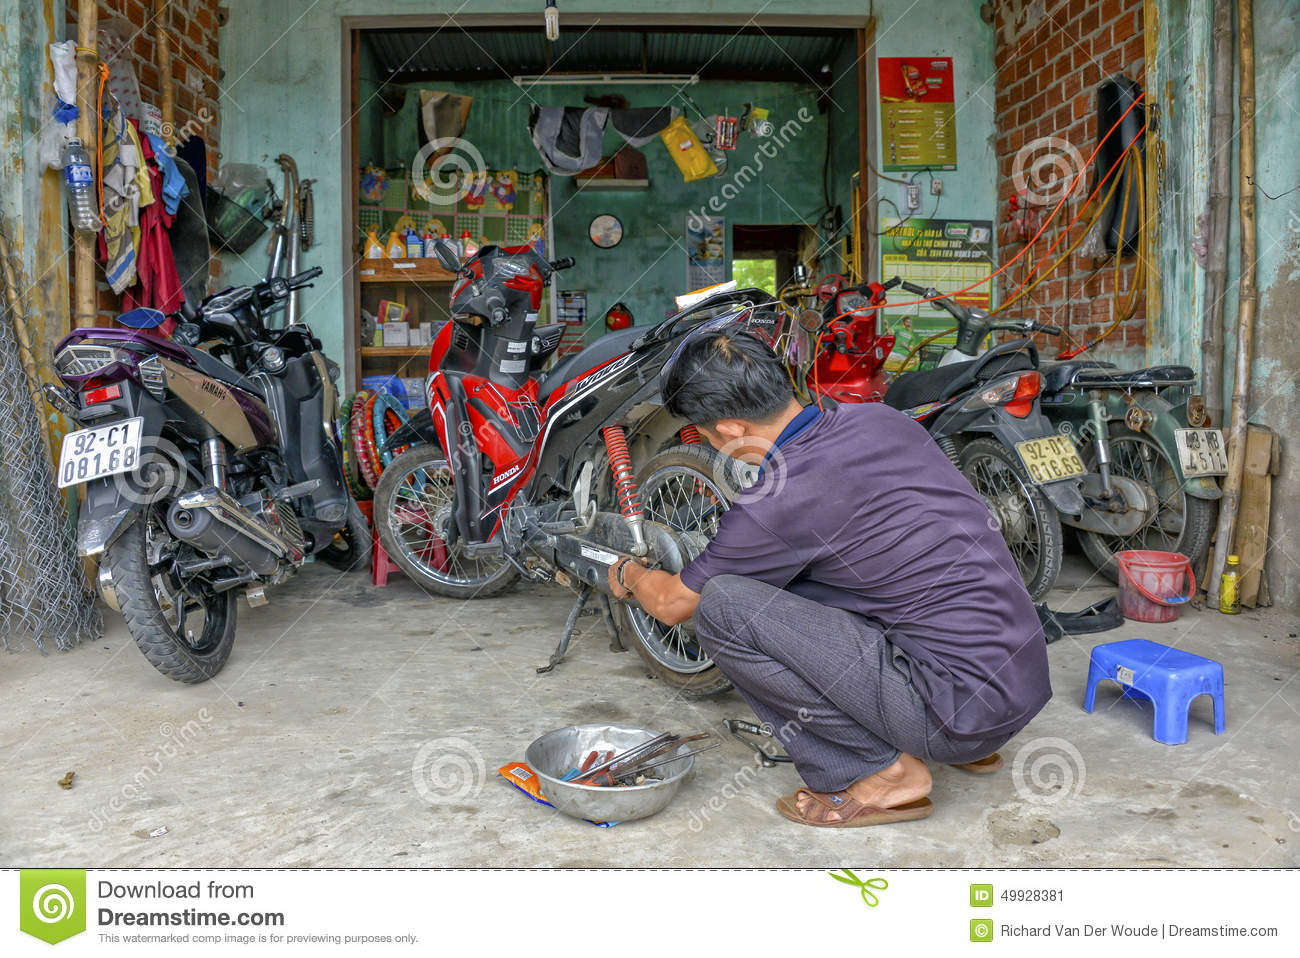 Setting up a Motorcycle Repair Shop